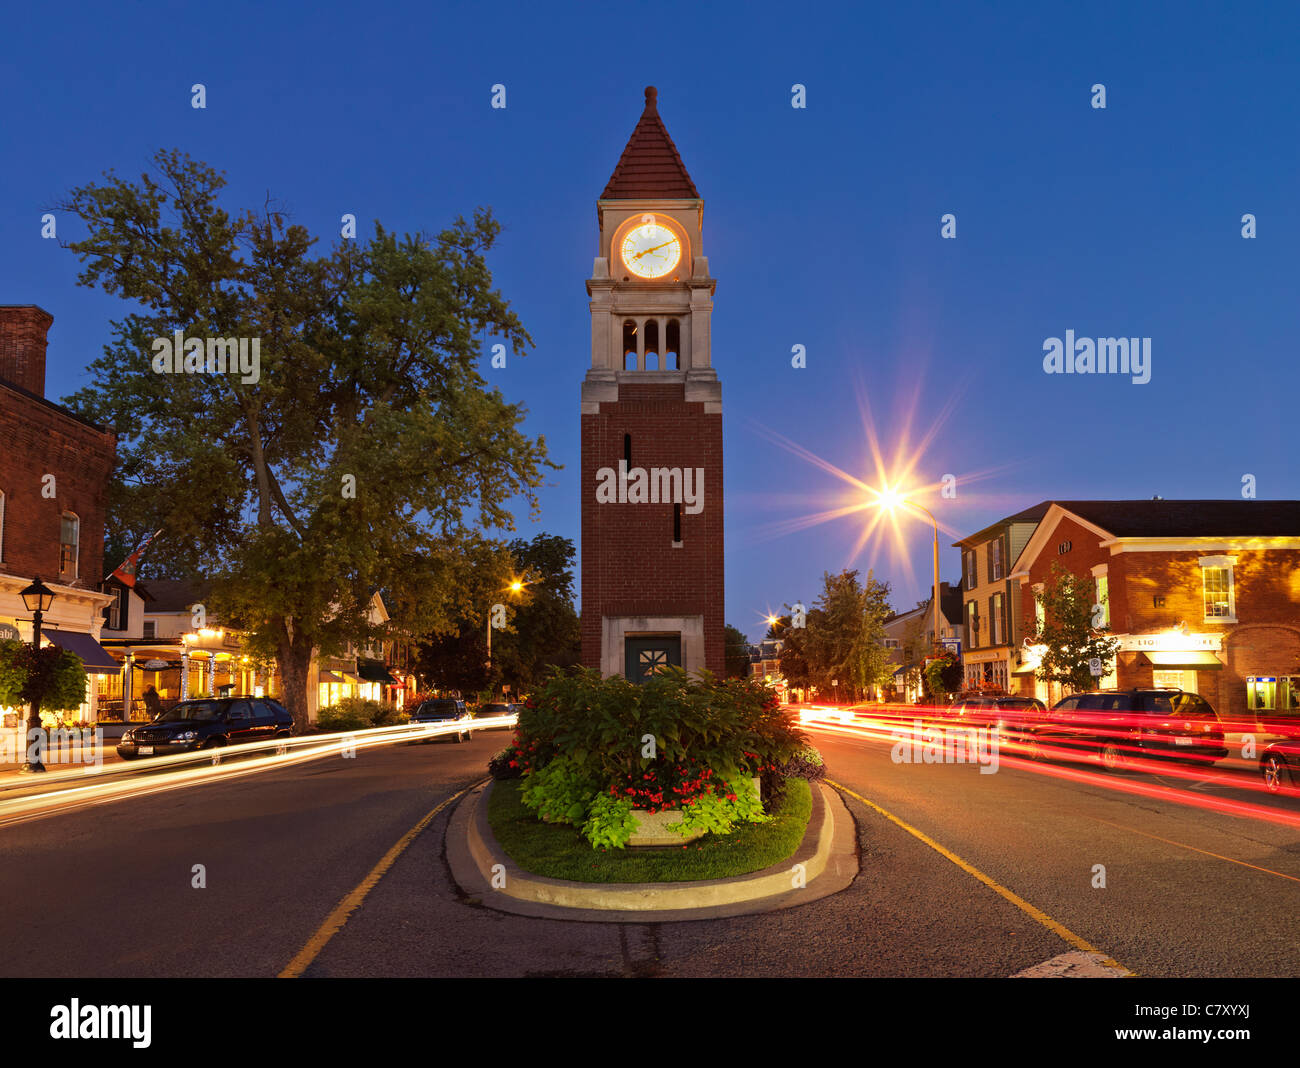 Canada,Ontario,Niagara-on-the-Lake, the clock tower (cenotaph) on Queen Street at dusk - Stock Image